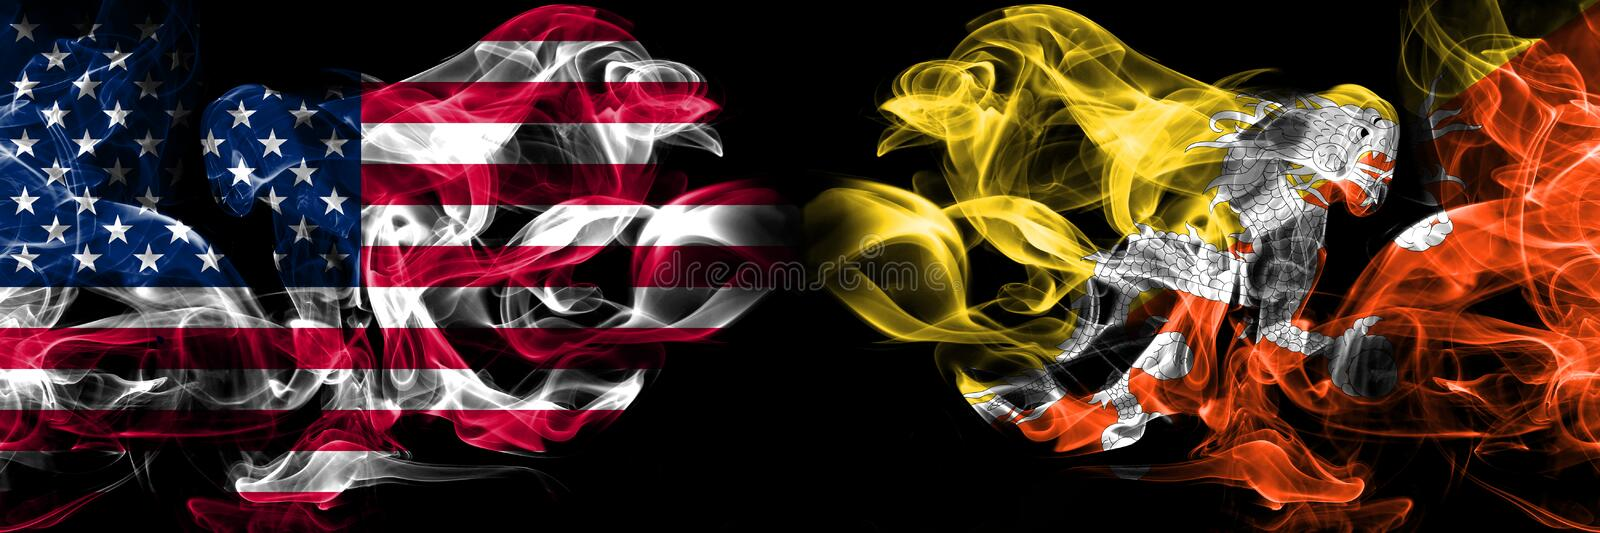 United States of America, USA vs Bhutan, Bhutanese background abstract concept peace smokes flags stock illustration